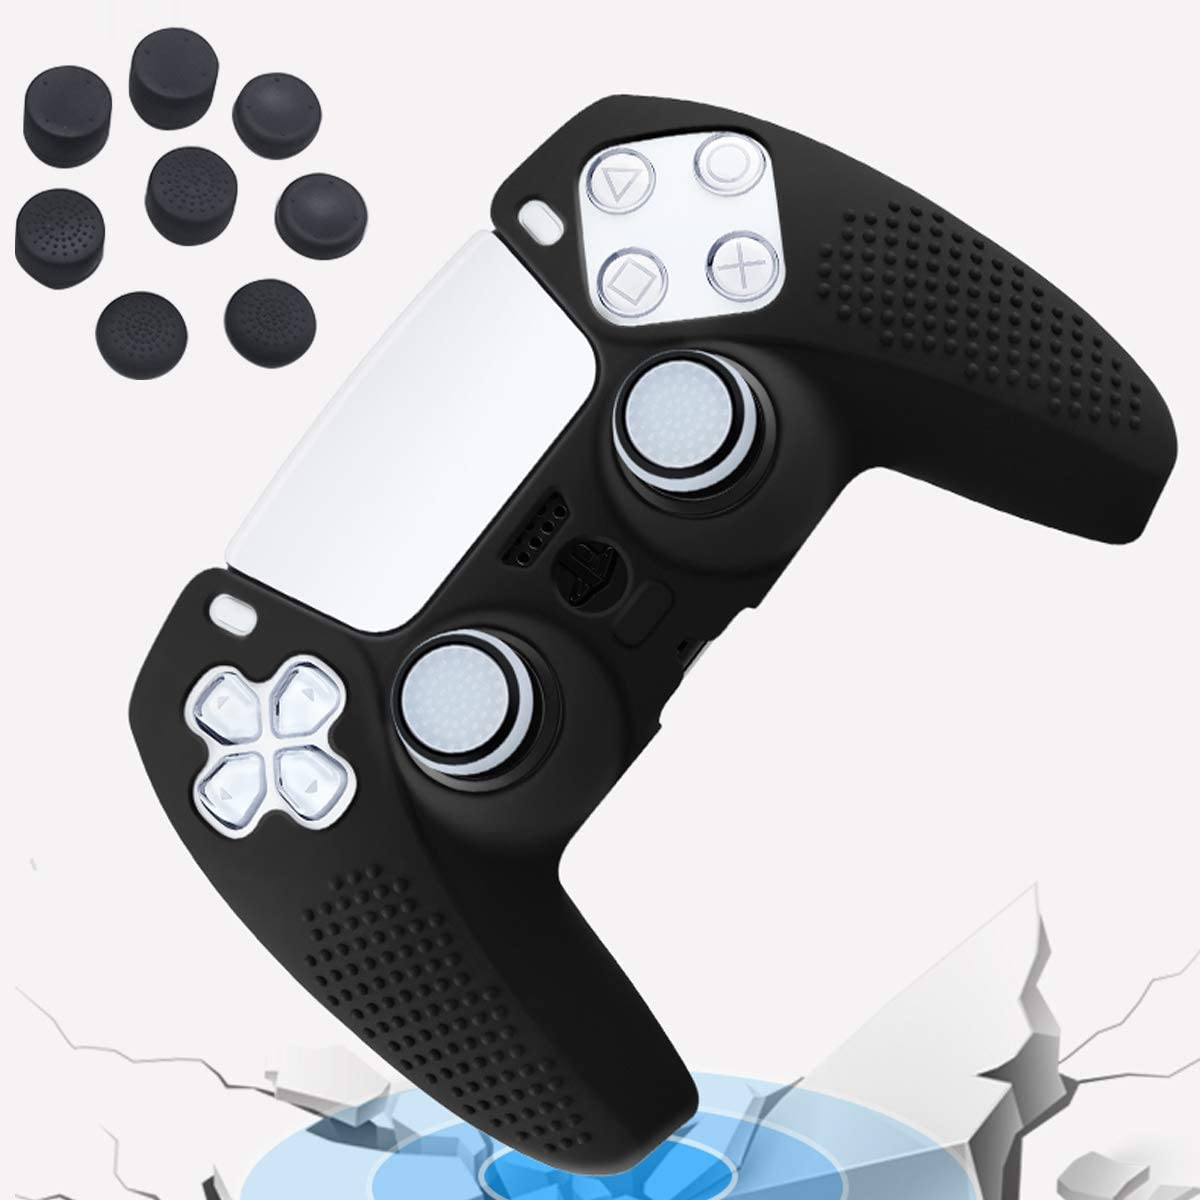 with Thumb Grips x 8 Ancable Silicone Cover Skin Case Protector Case Faceplates Kits for Playstation 5 Controller x 2 Black PS5 Controller Cover Skin Black 2 Pack